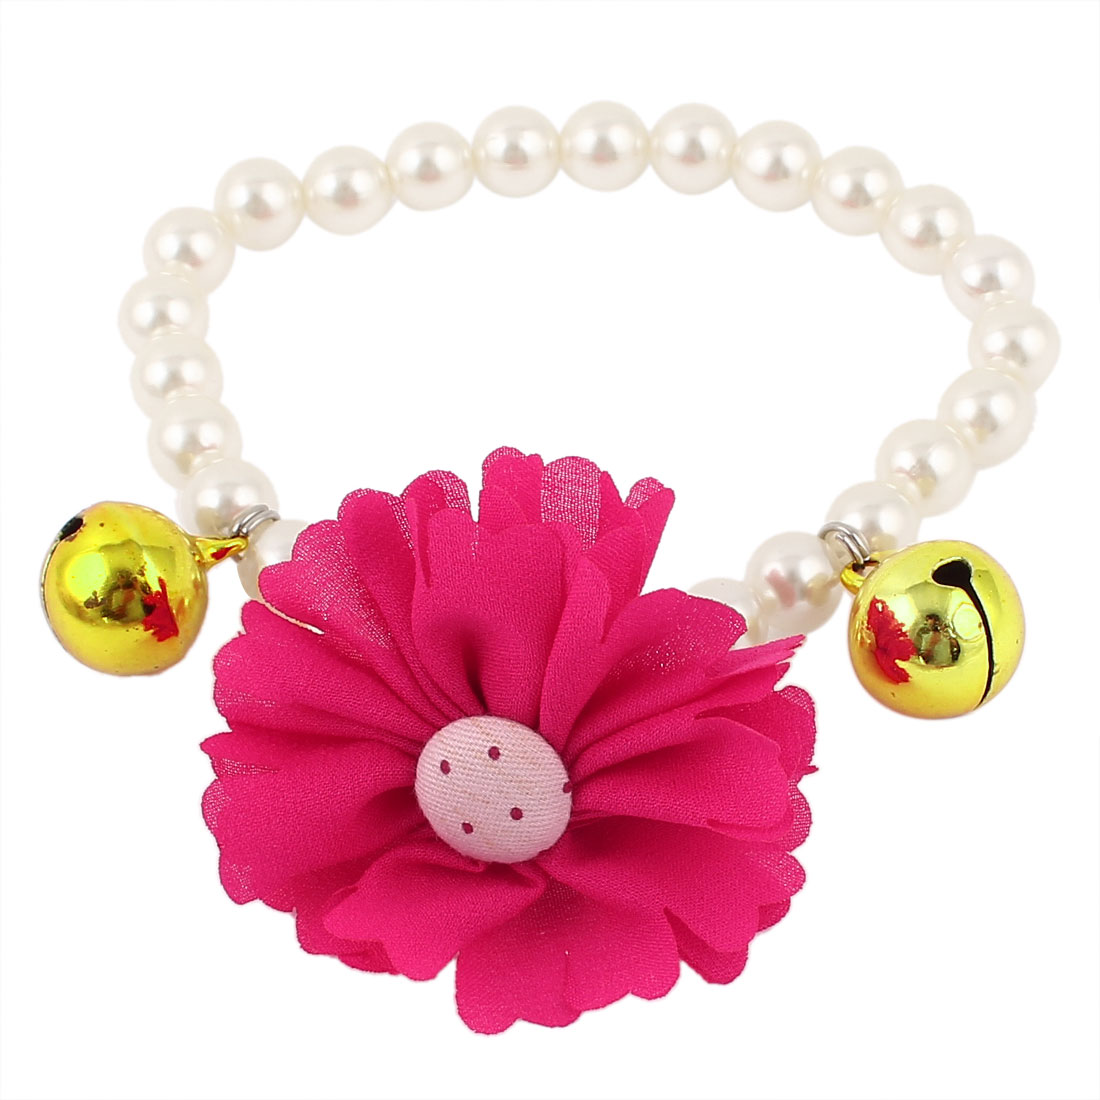 Metal Bell Pendant Flower Accent Pet Dog Plastic Imitation Pearls Collar Necklace White Fuchsia S